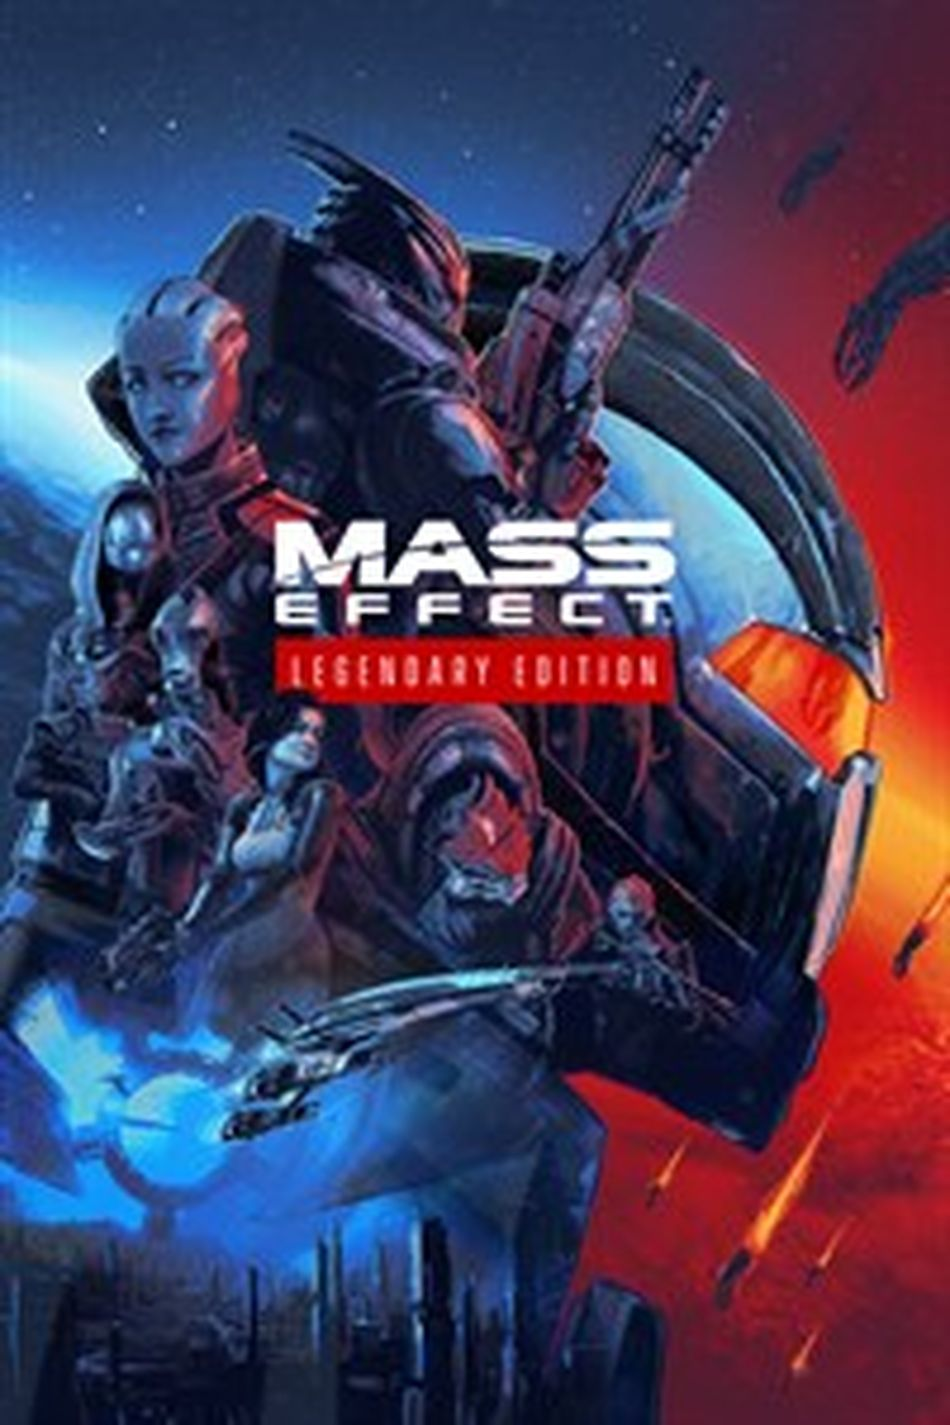 'Mass Effect: Legendary Edition' comes out in May — here's where to preorder a copy